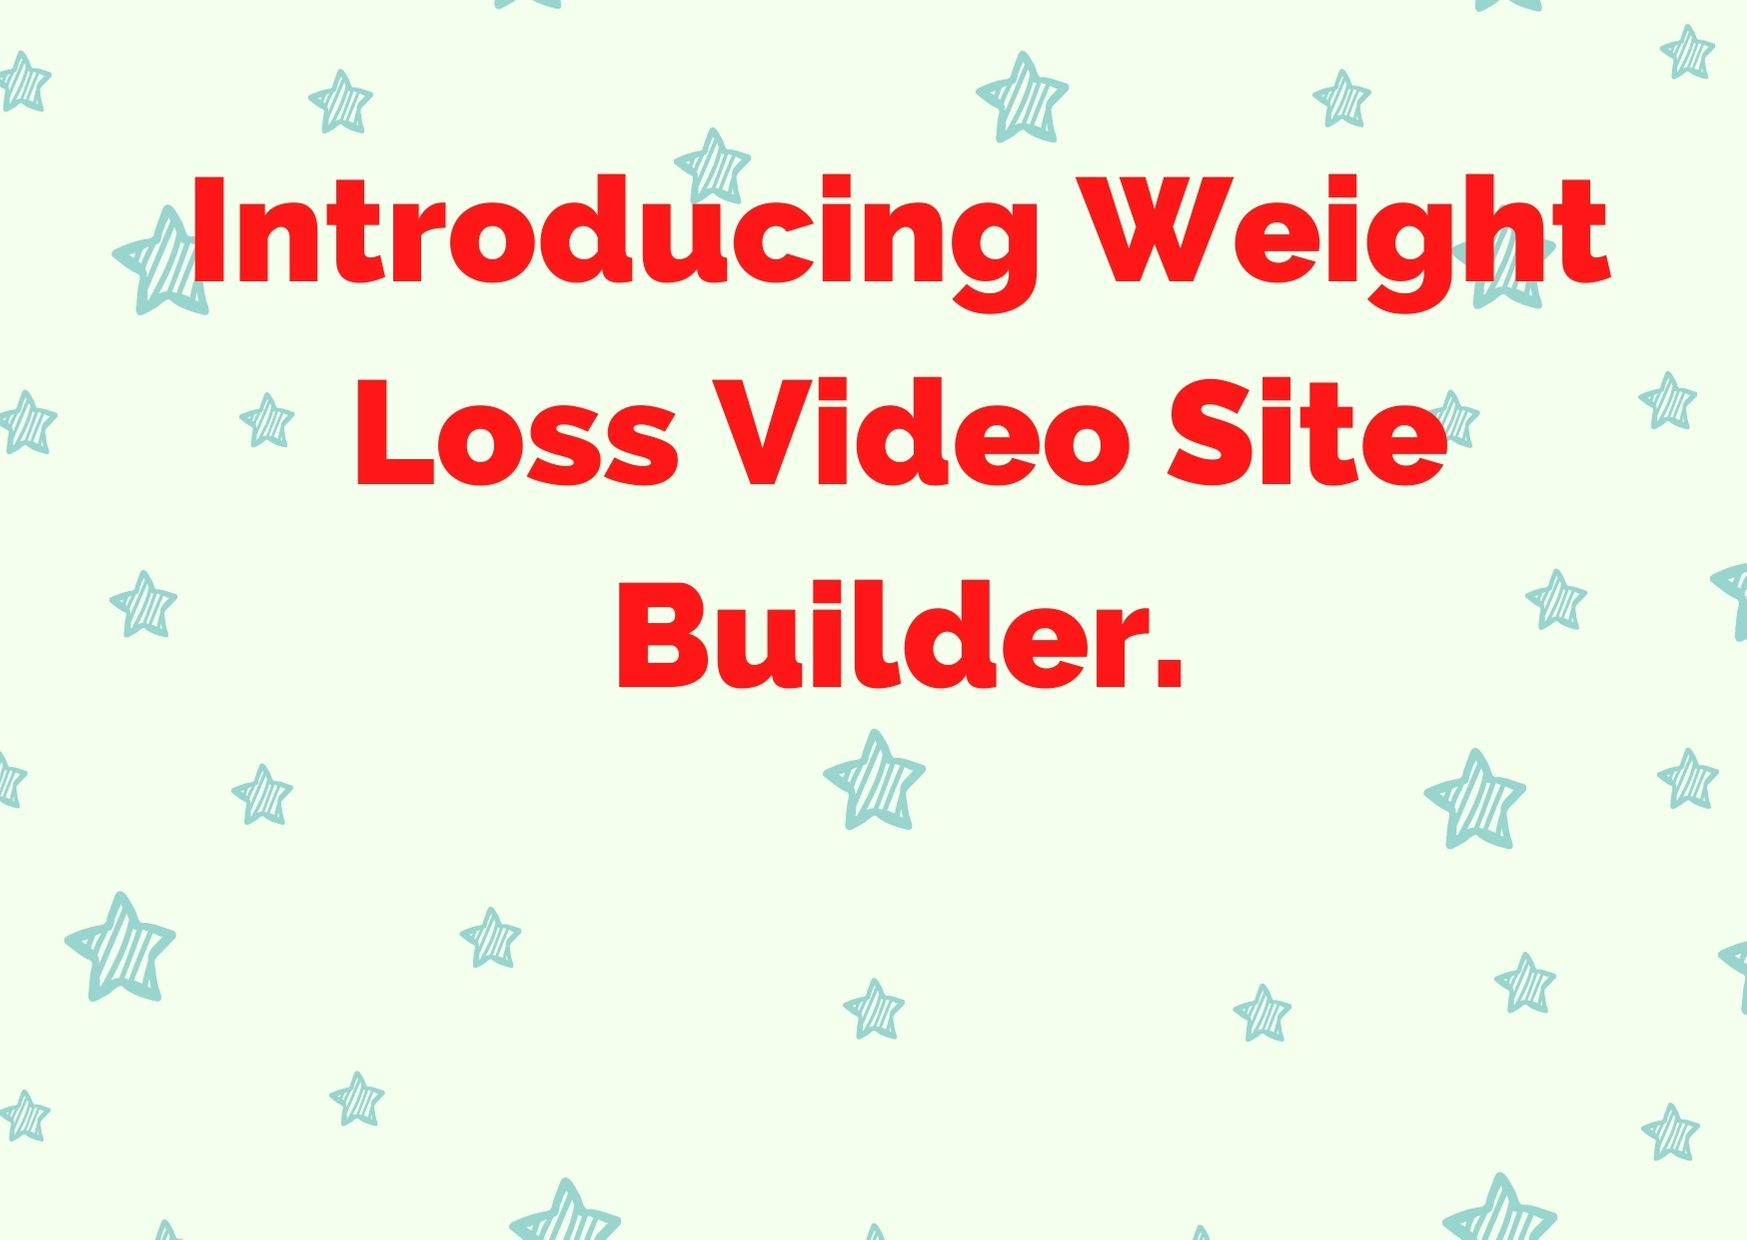 Introducing Weight Loss Video Site Builder